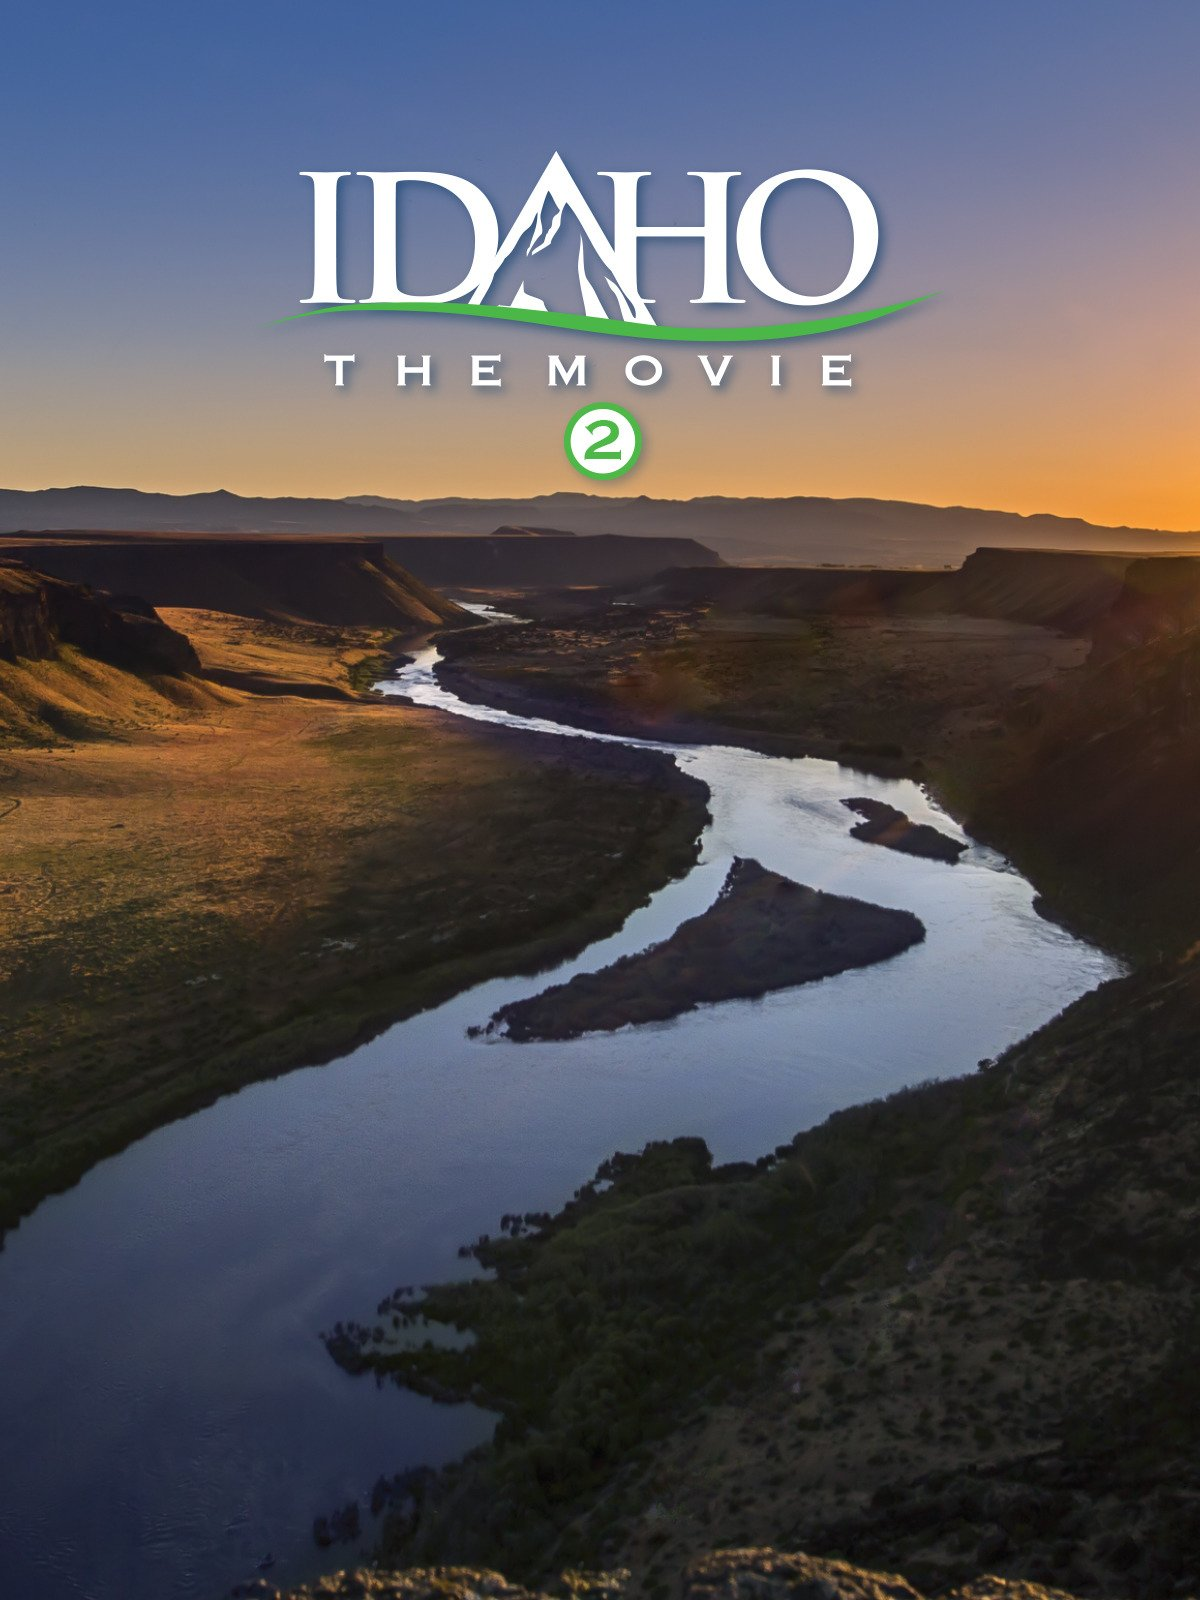 Idaho the Movie 2